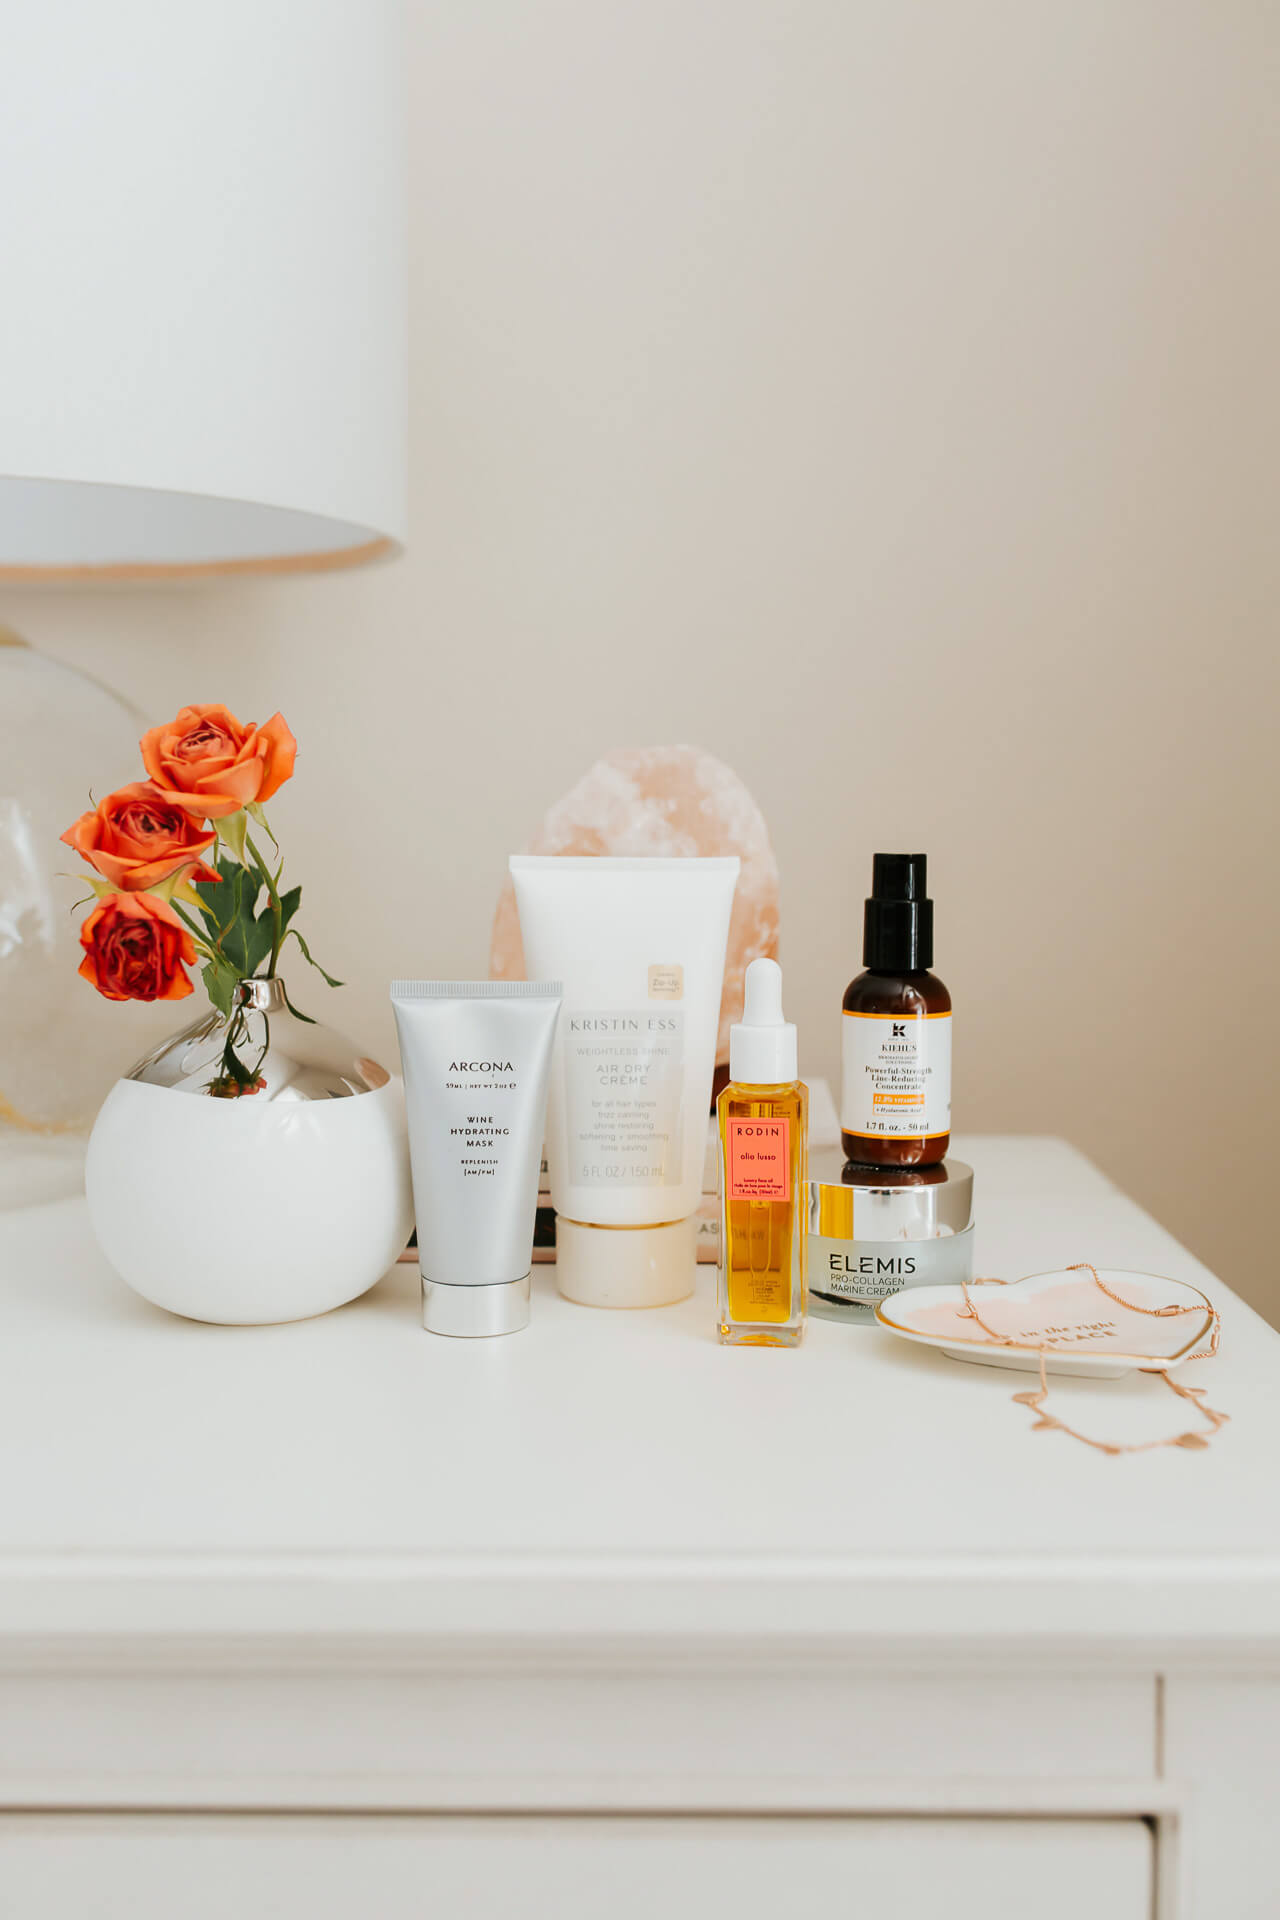 What to use for daily beauty routine